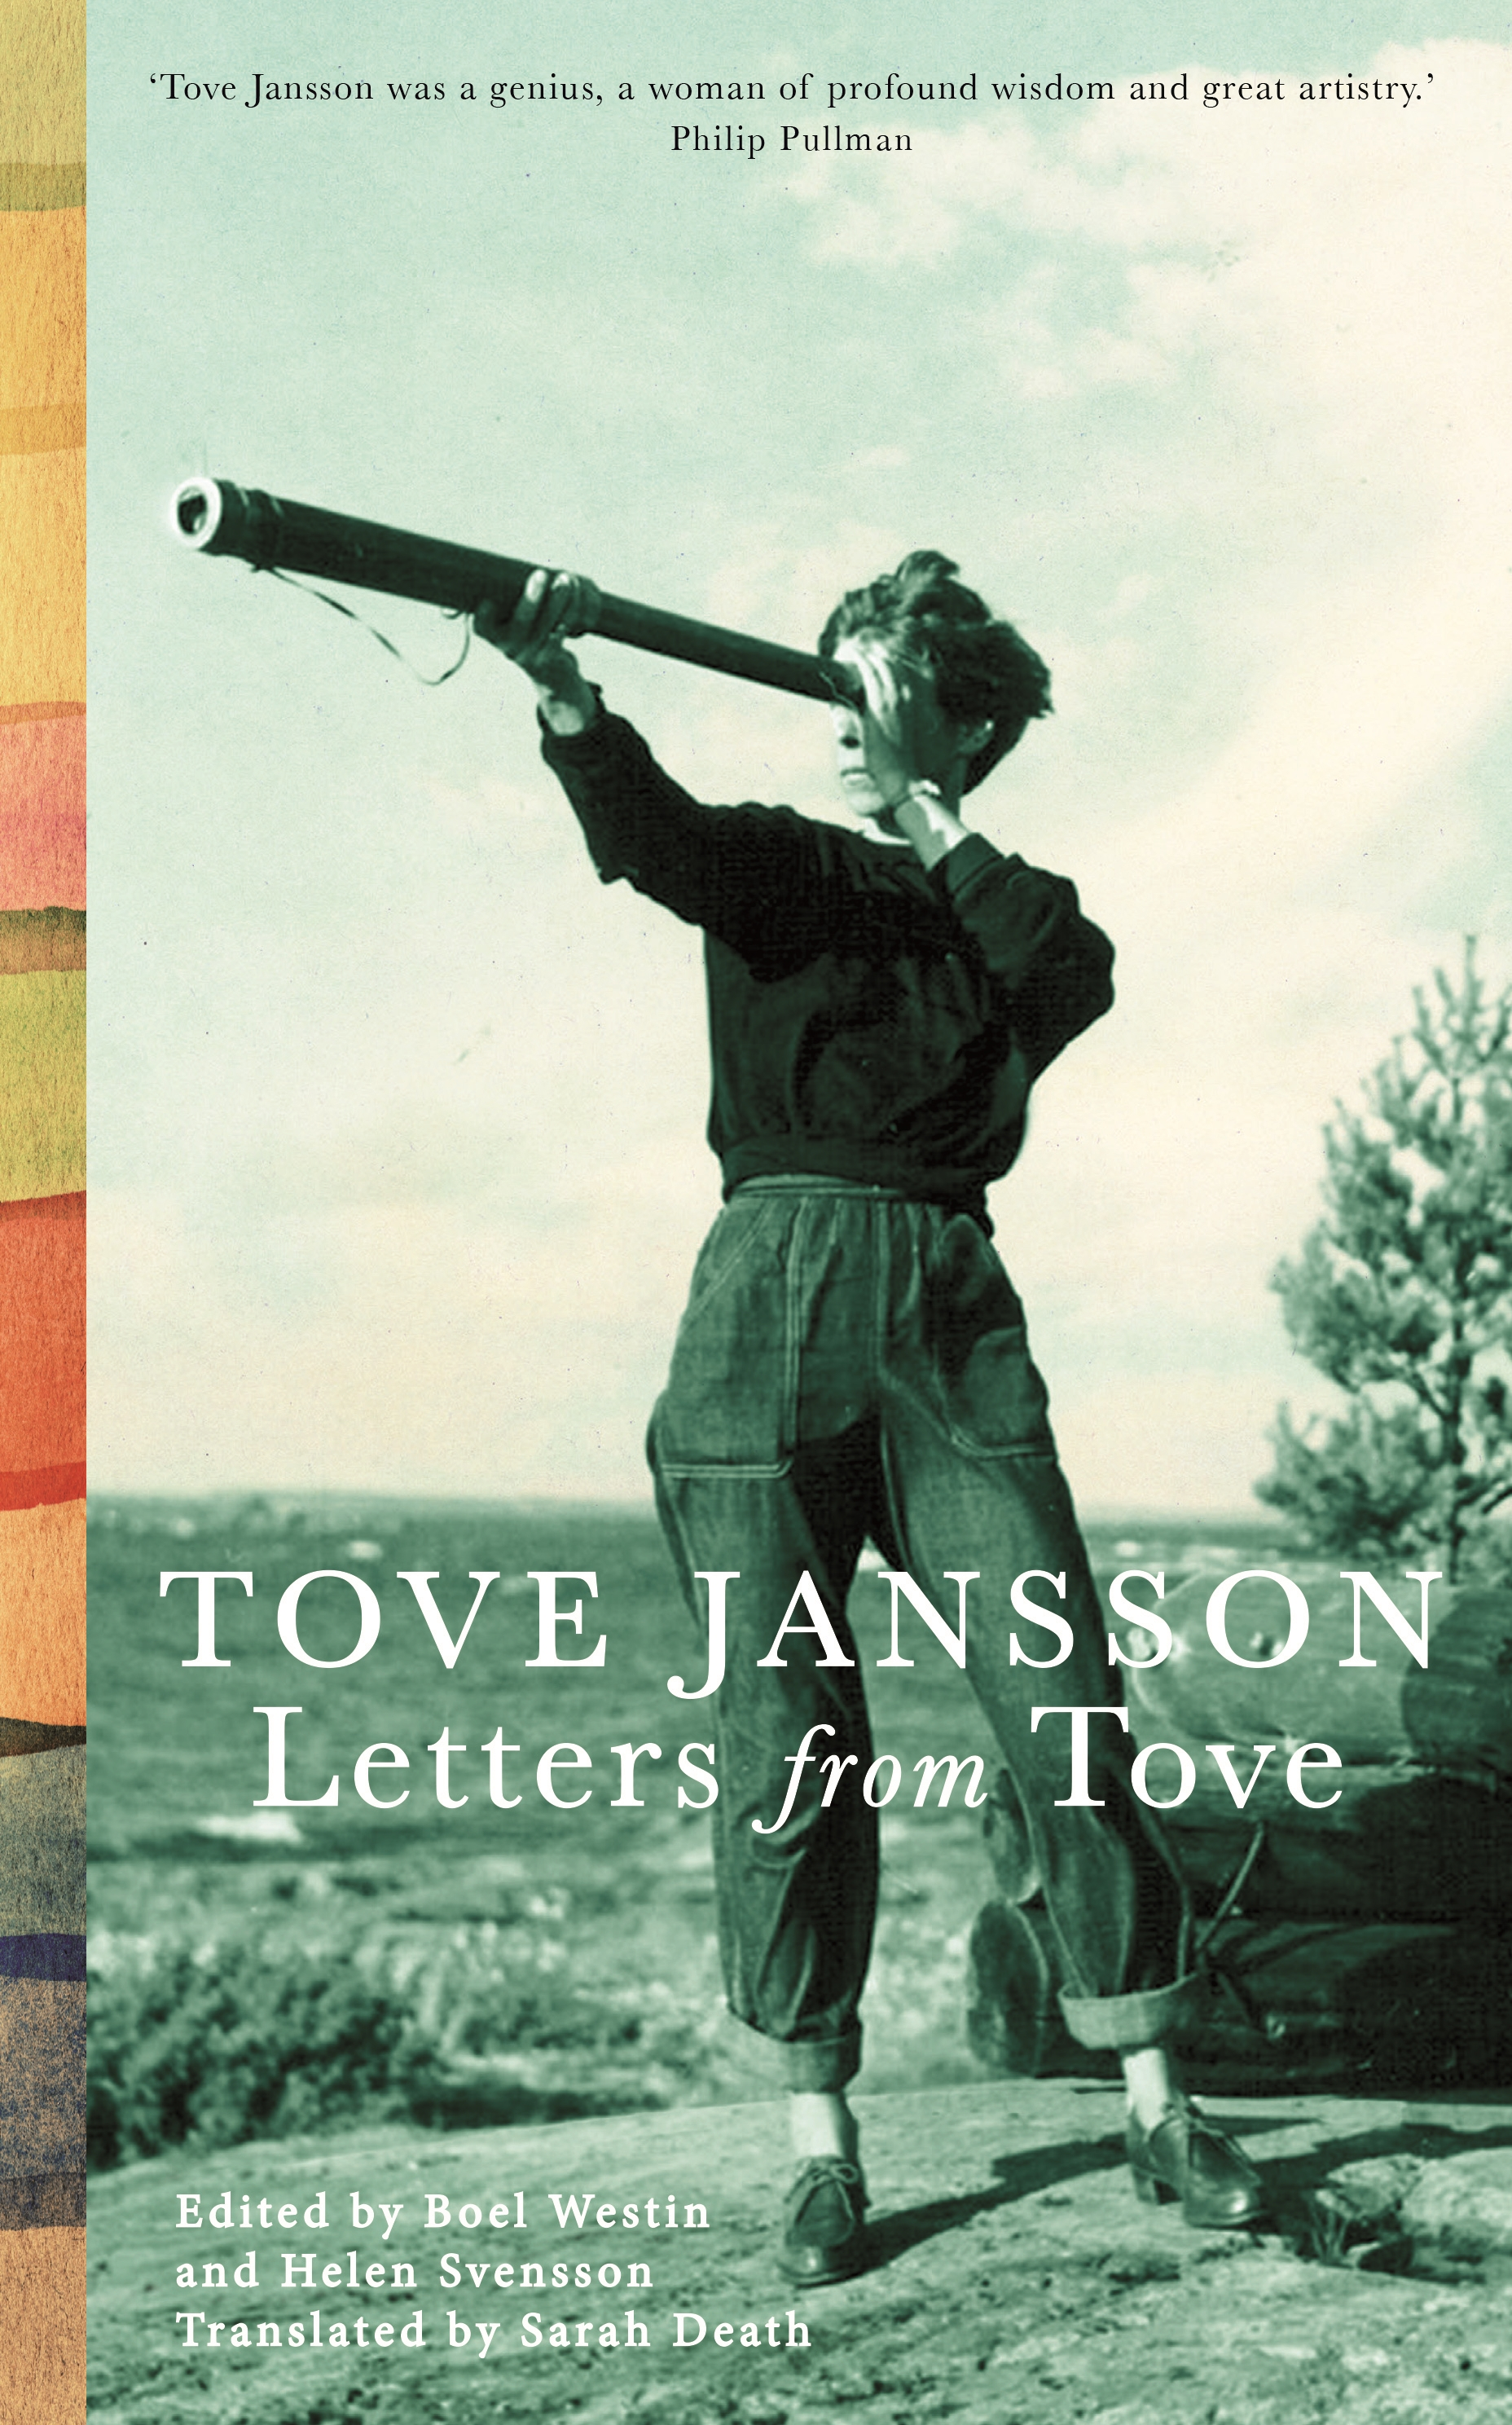 Letters from Tove - Tove in her own words and in her own times.